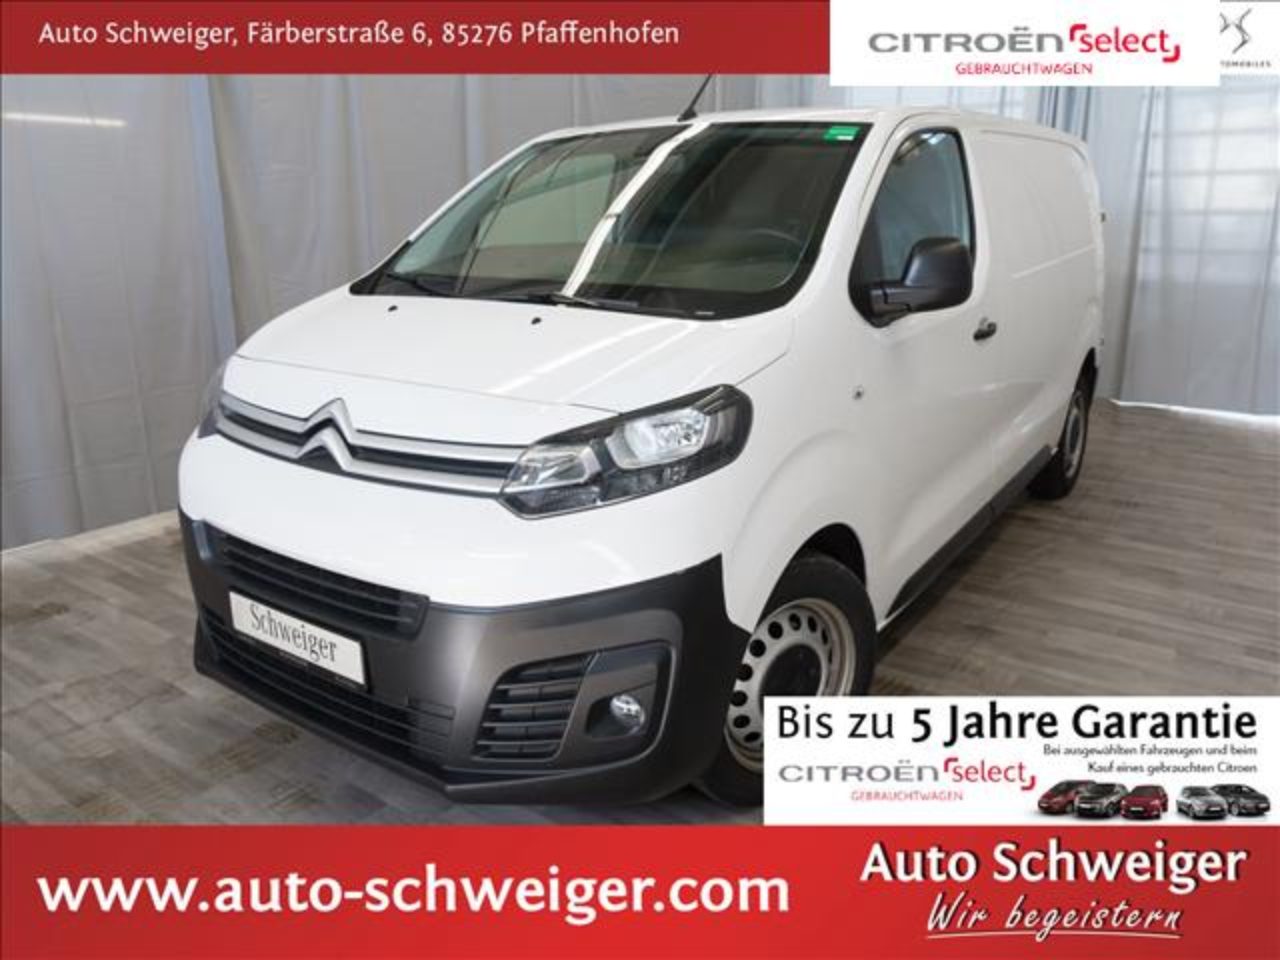 Citroën Jumpy KaWa Business M L2 PTS hi. Radio DAB Klima